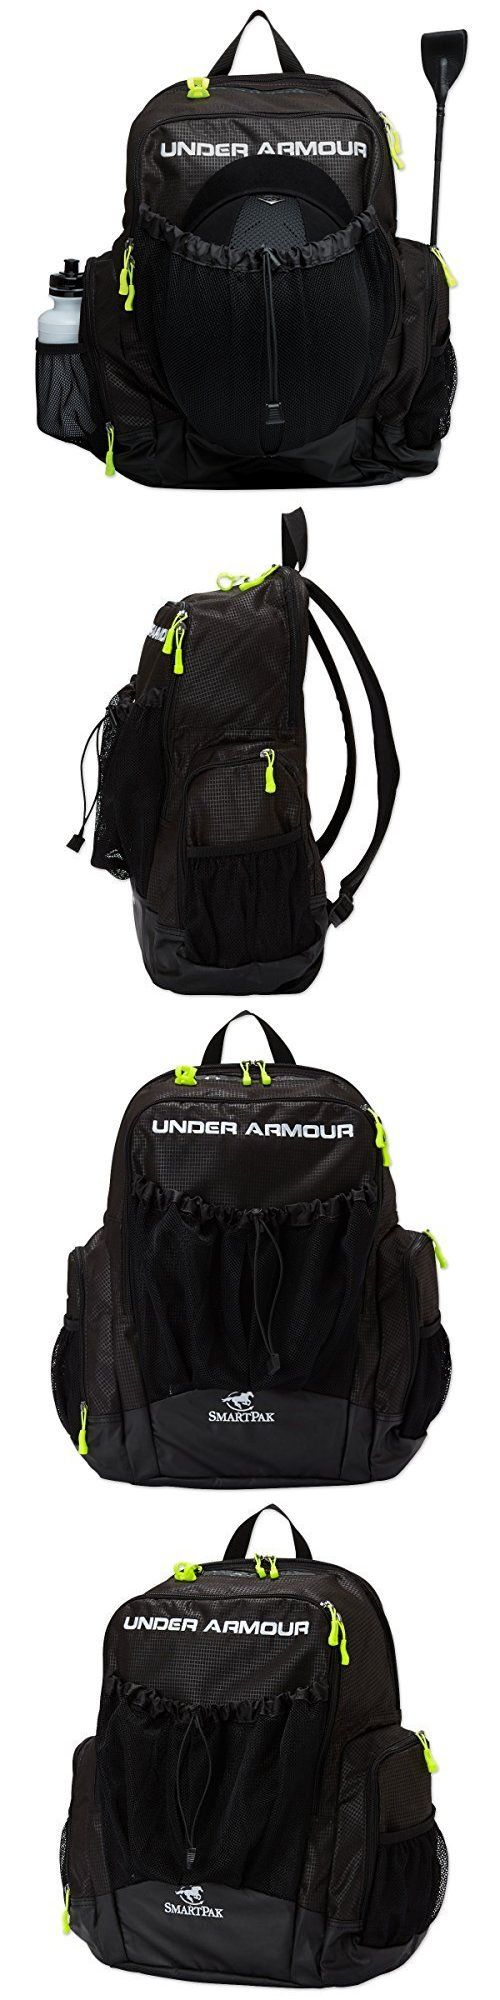 Equipment Bags 159153: Under Armour Striker Soccer Backpack Black Size One Size, New -> BUY IT NOW ONLY: $60.61 on eBay!